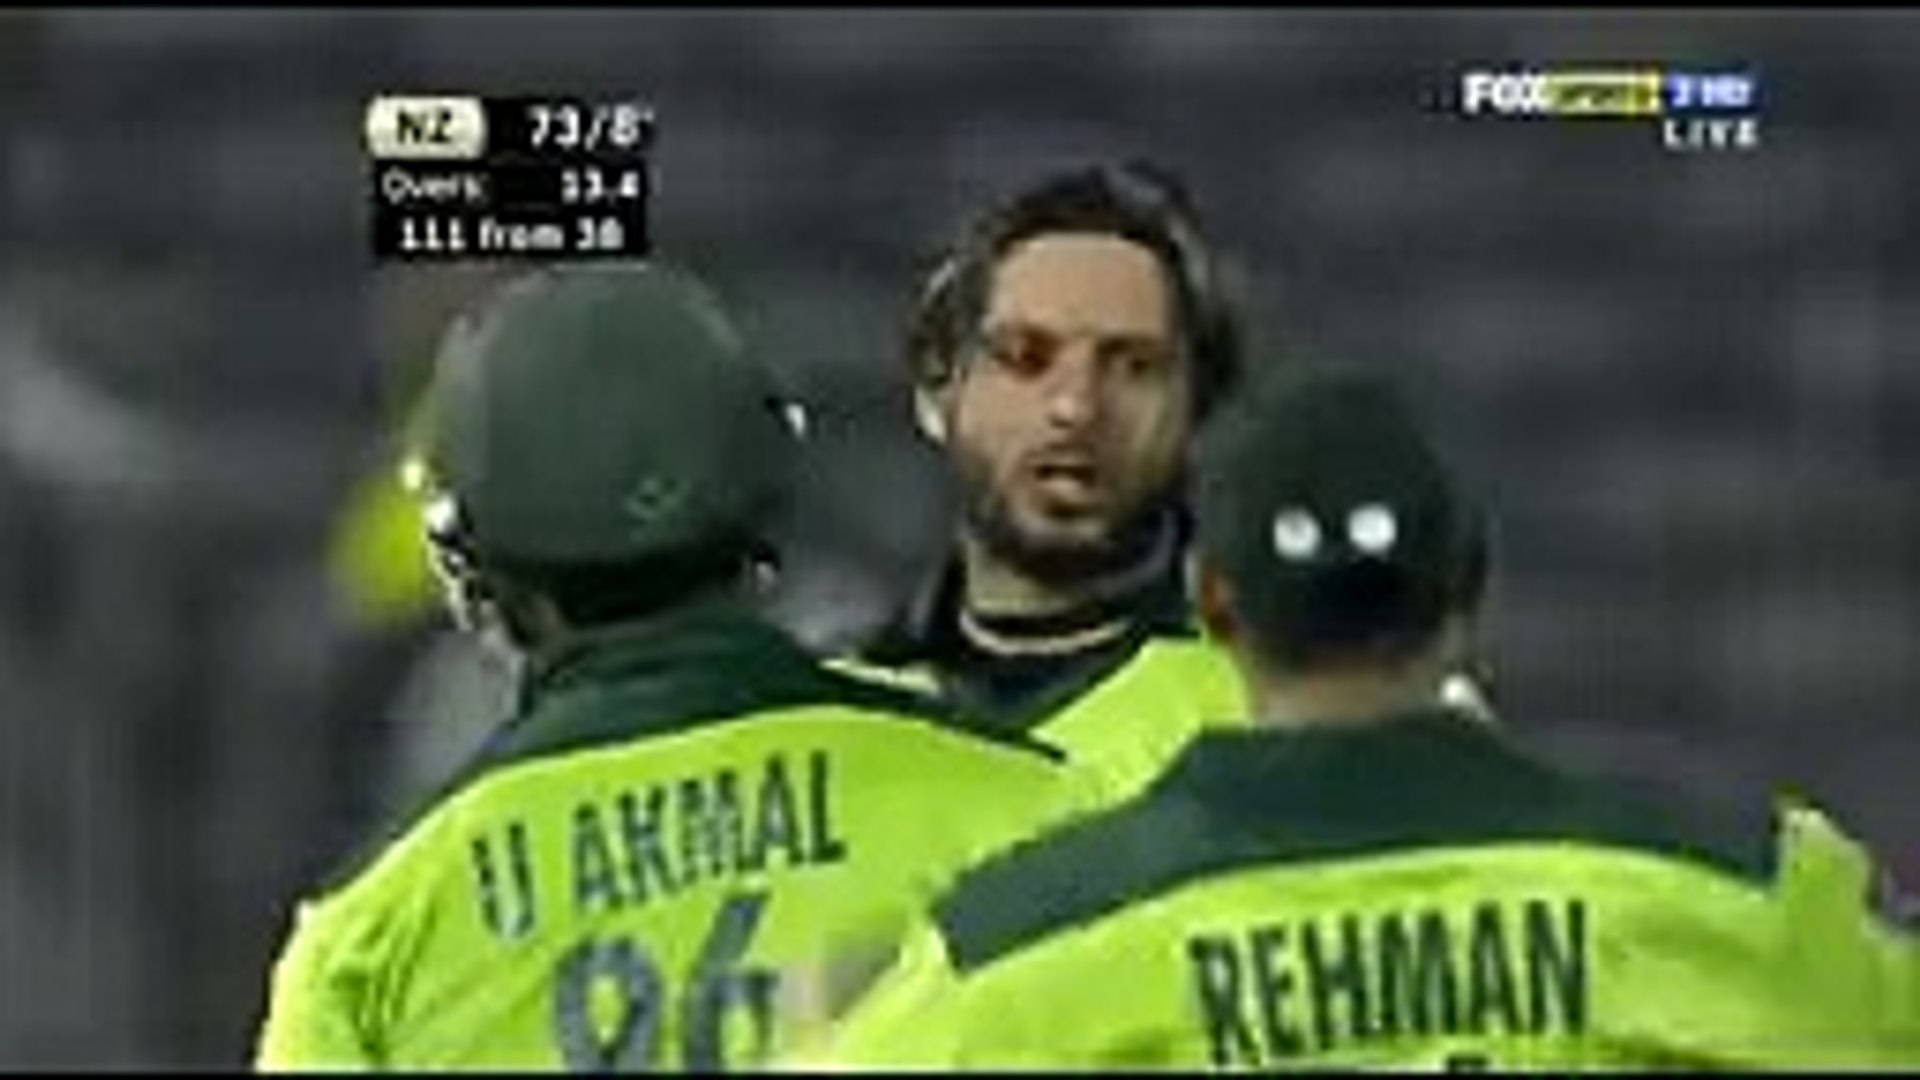 A spinner with 134 km/h speed. Only Shahid Afridi can do this. Afridi against New Zealand at 134 km/